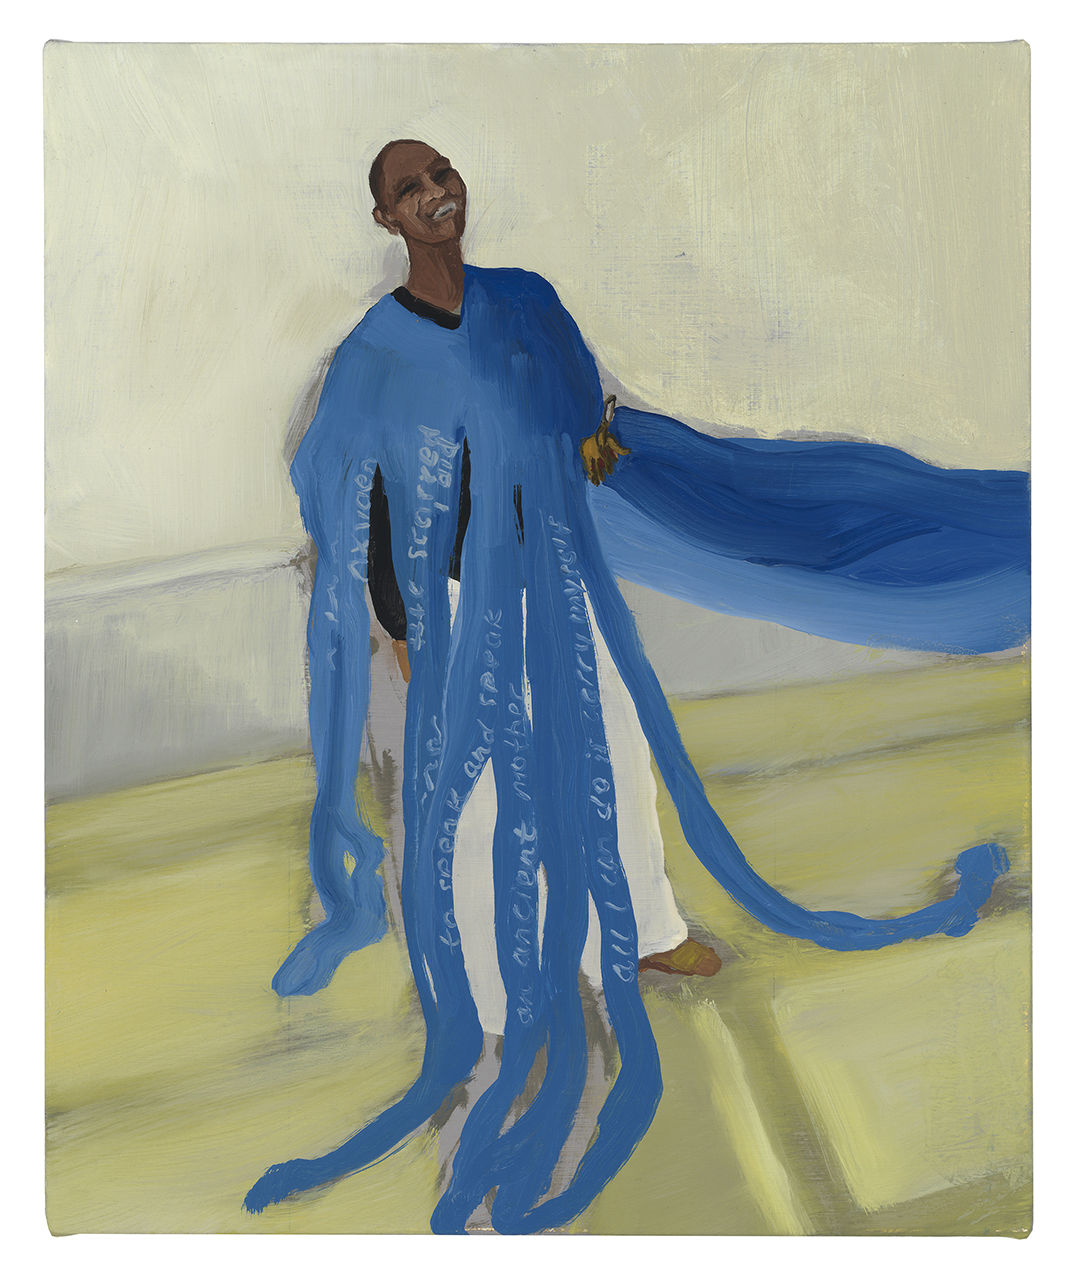 """Pamela in Her Poetry Gown , 2018, oil on canvas, 16.5"""" x 13.5"""""""